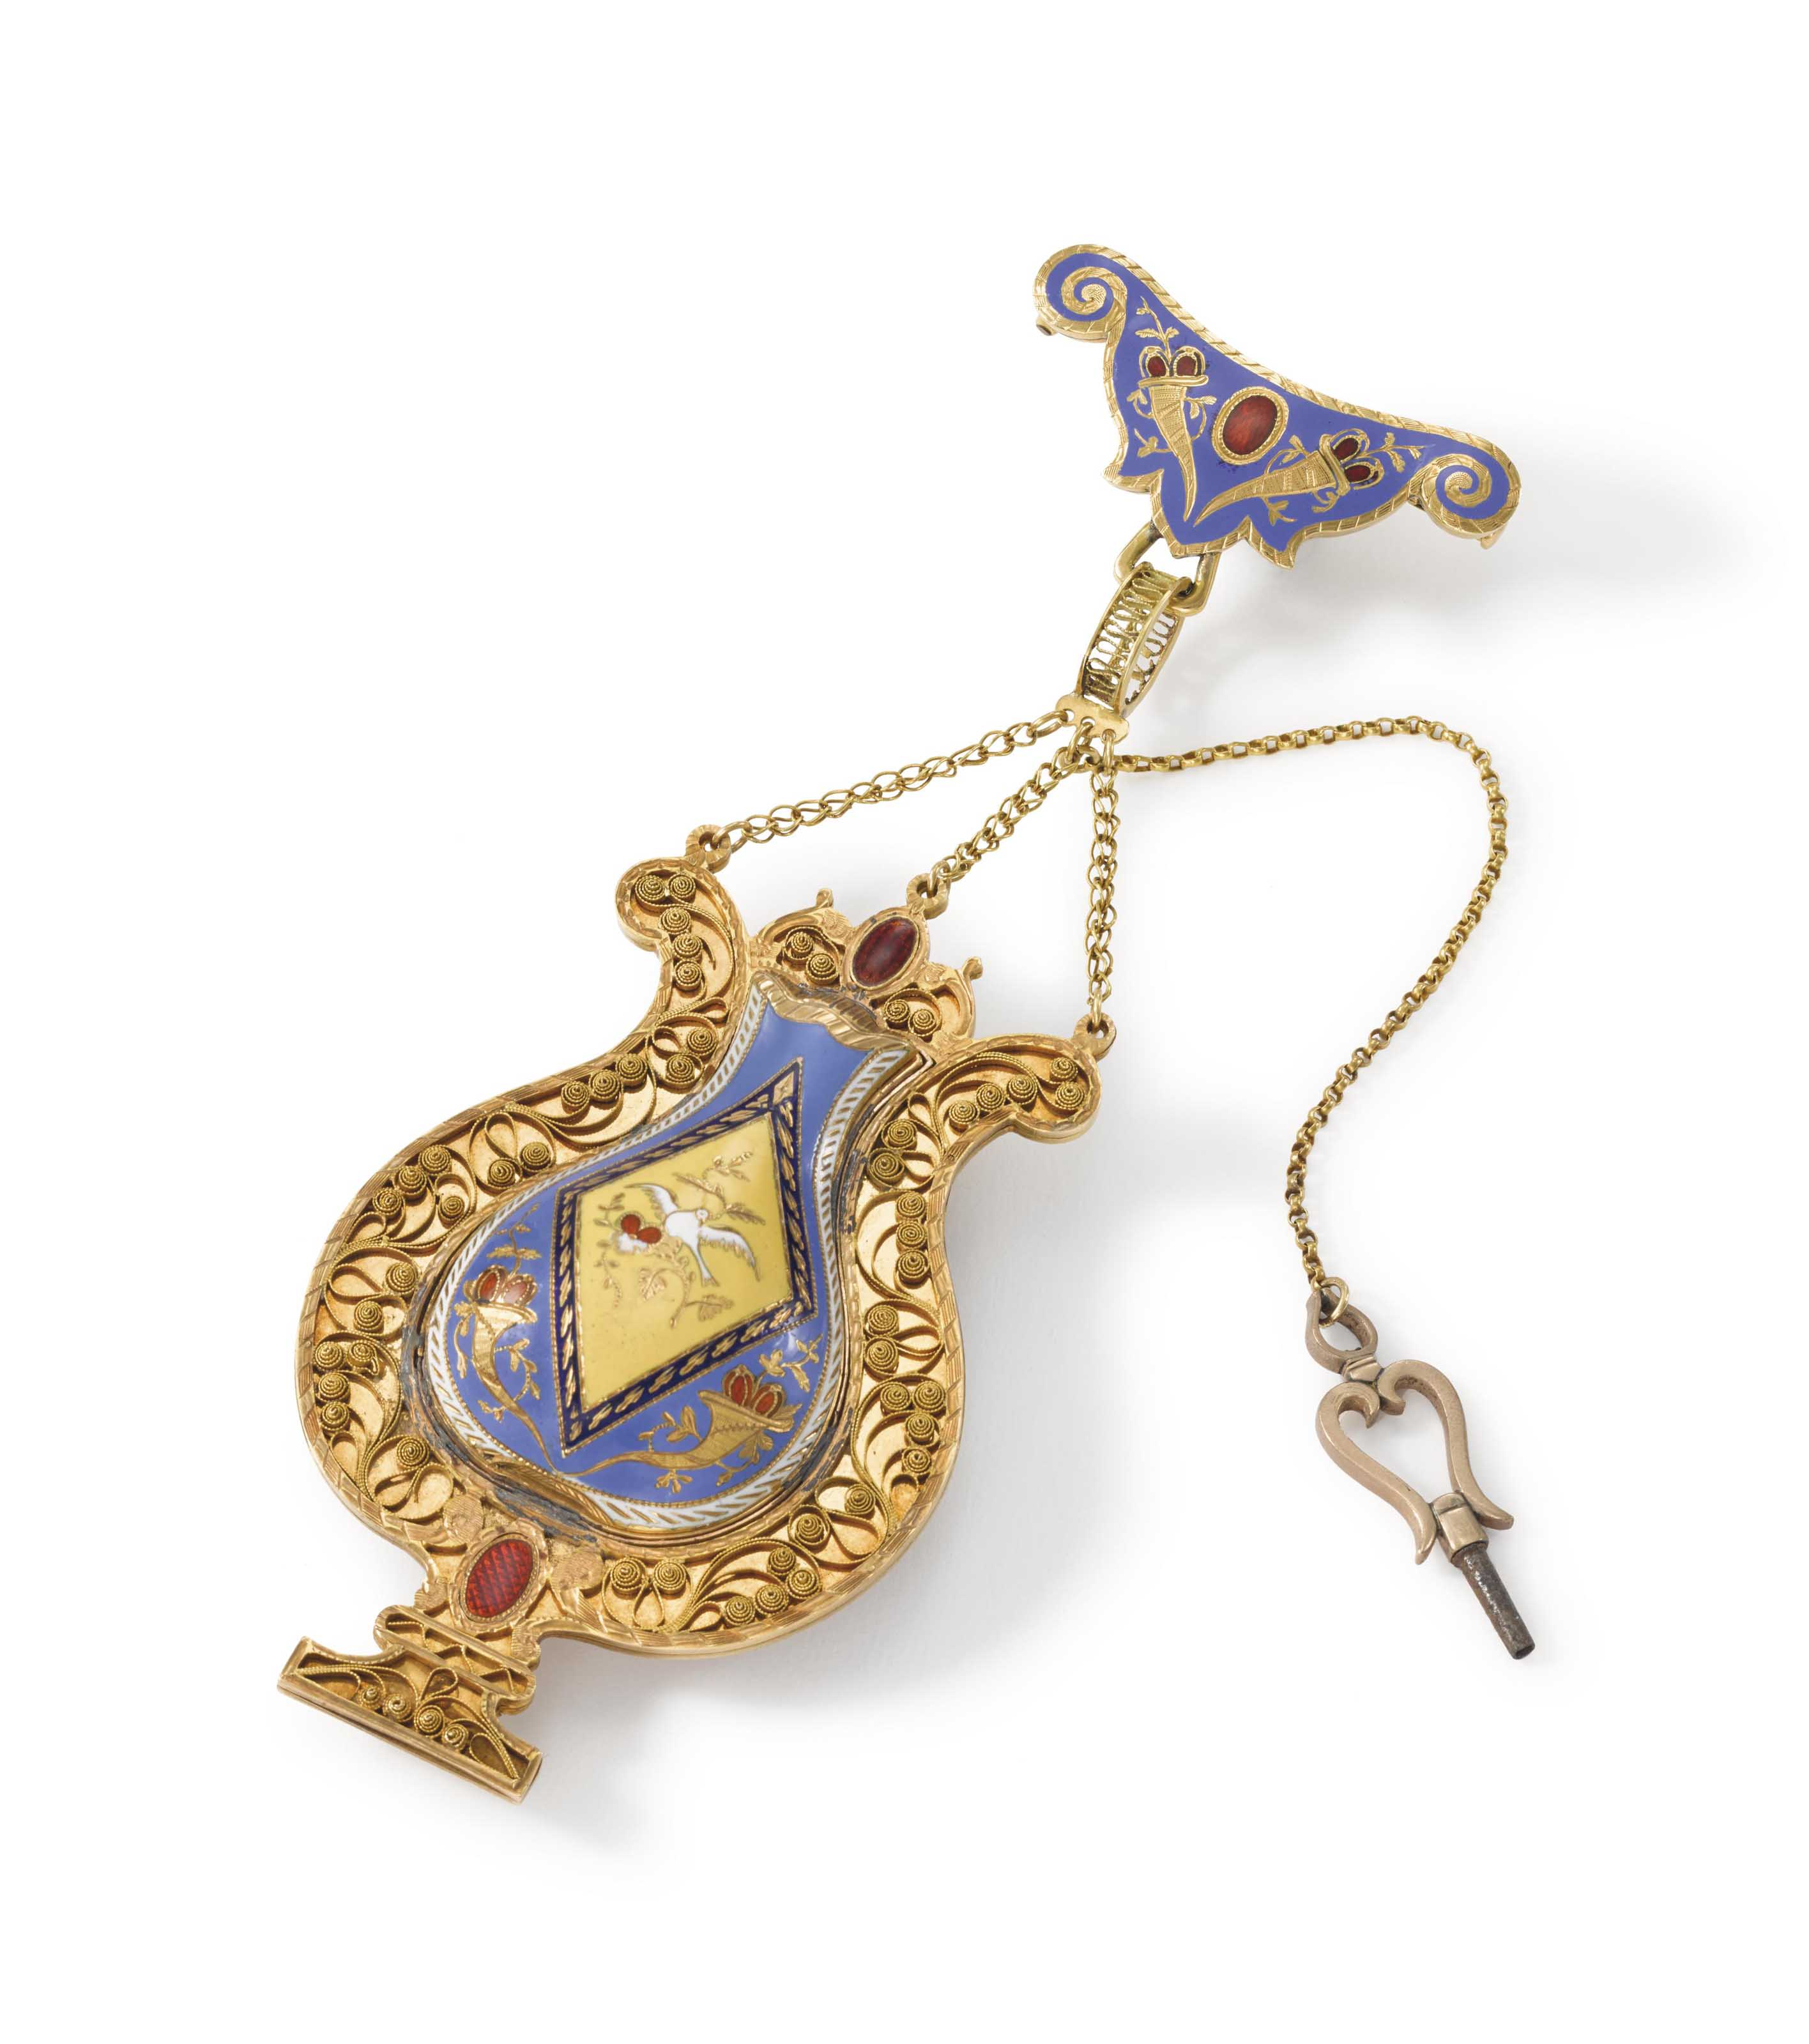 Ls. Duchêne & Fils. A very fine and rare 18K gold and enamel lyre-form pendant watch with concealed dial and visible balance.